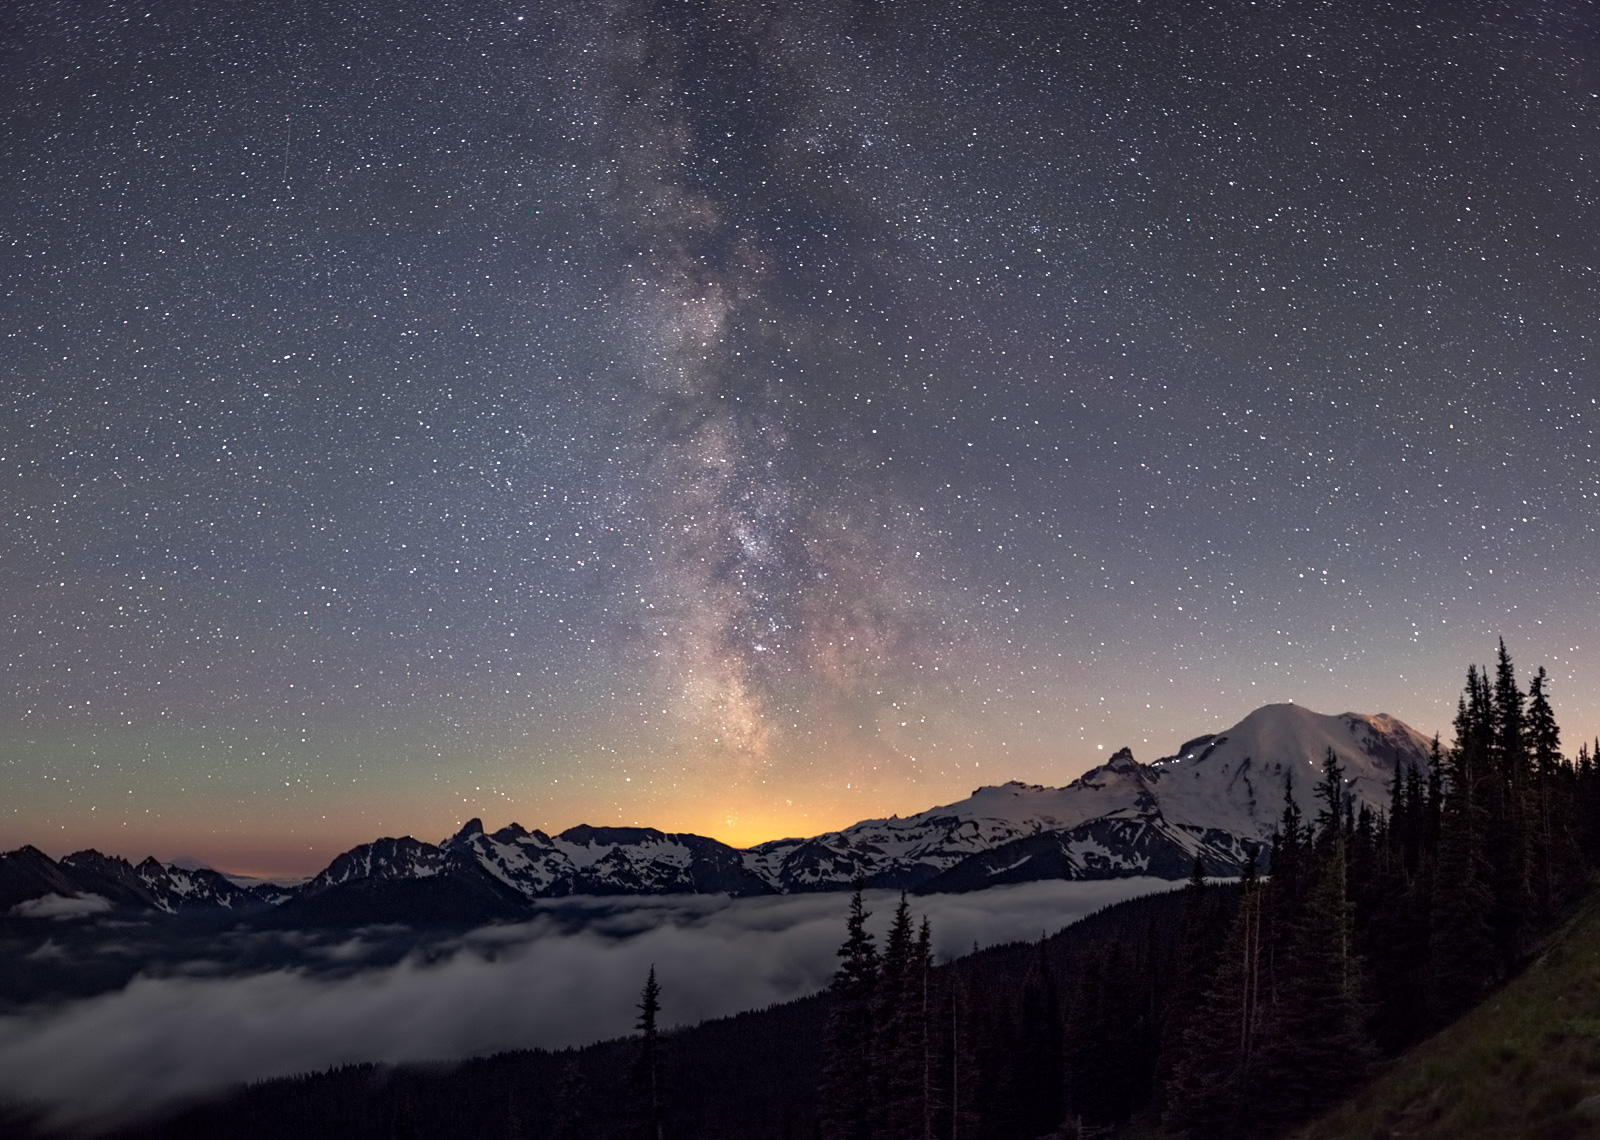 The Milky Way from Mount Rainier National Park. Took this a good hour after the moon set. The  large bank of clouds  just below Rainier started to dissipate a little.